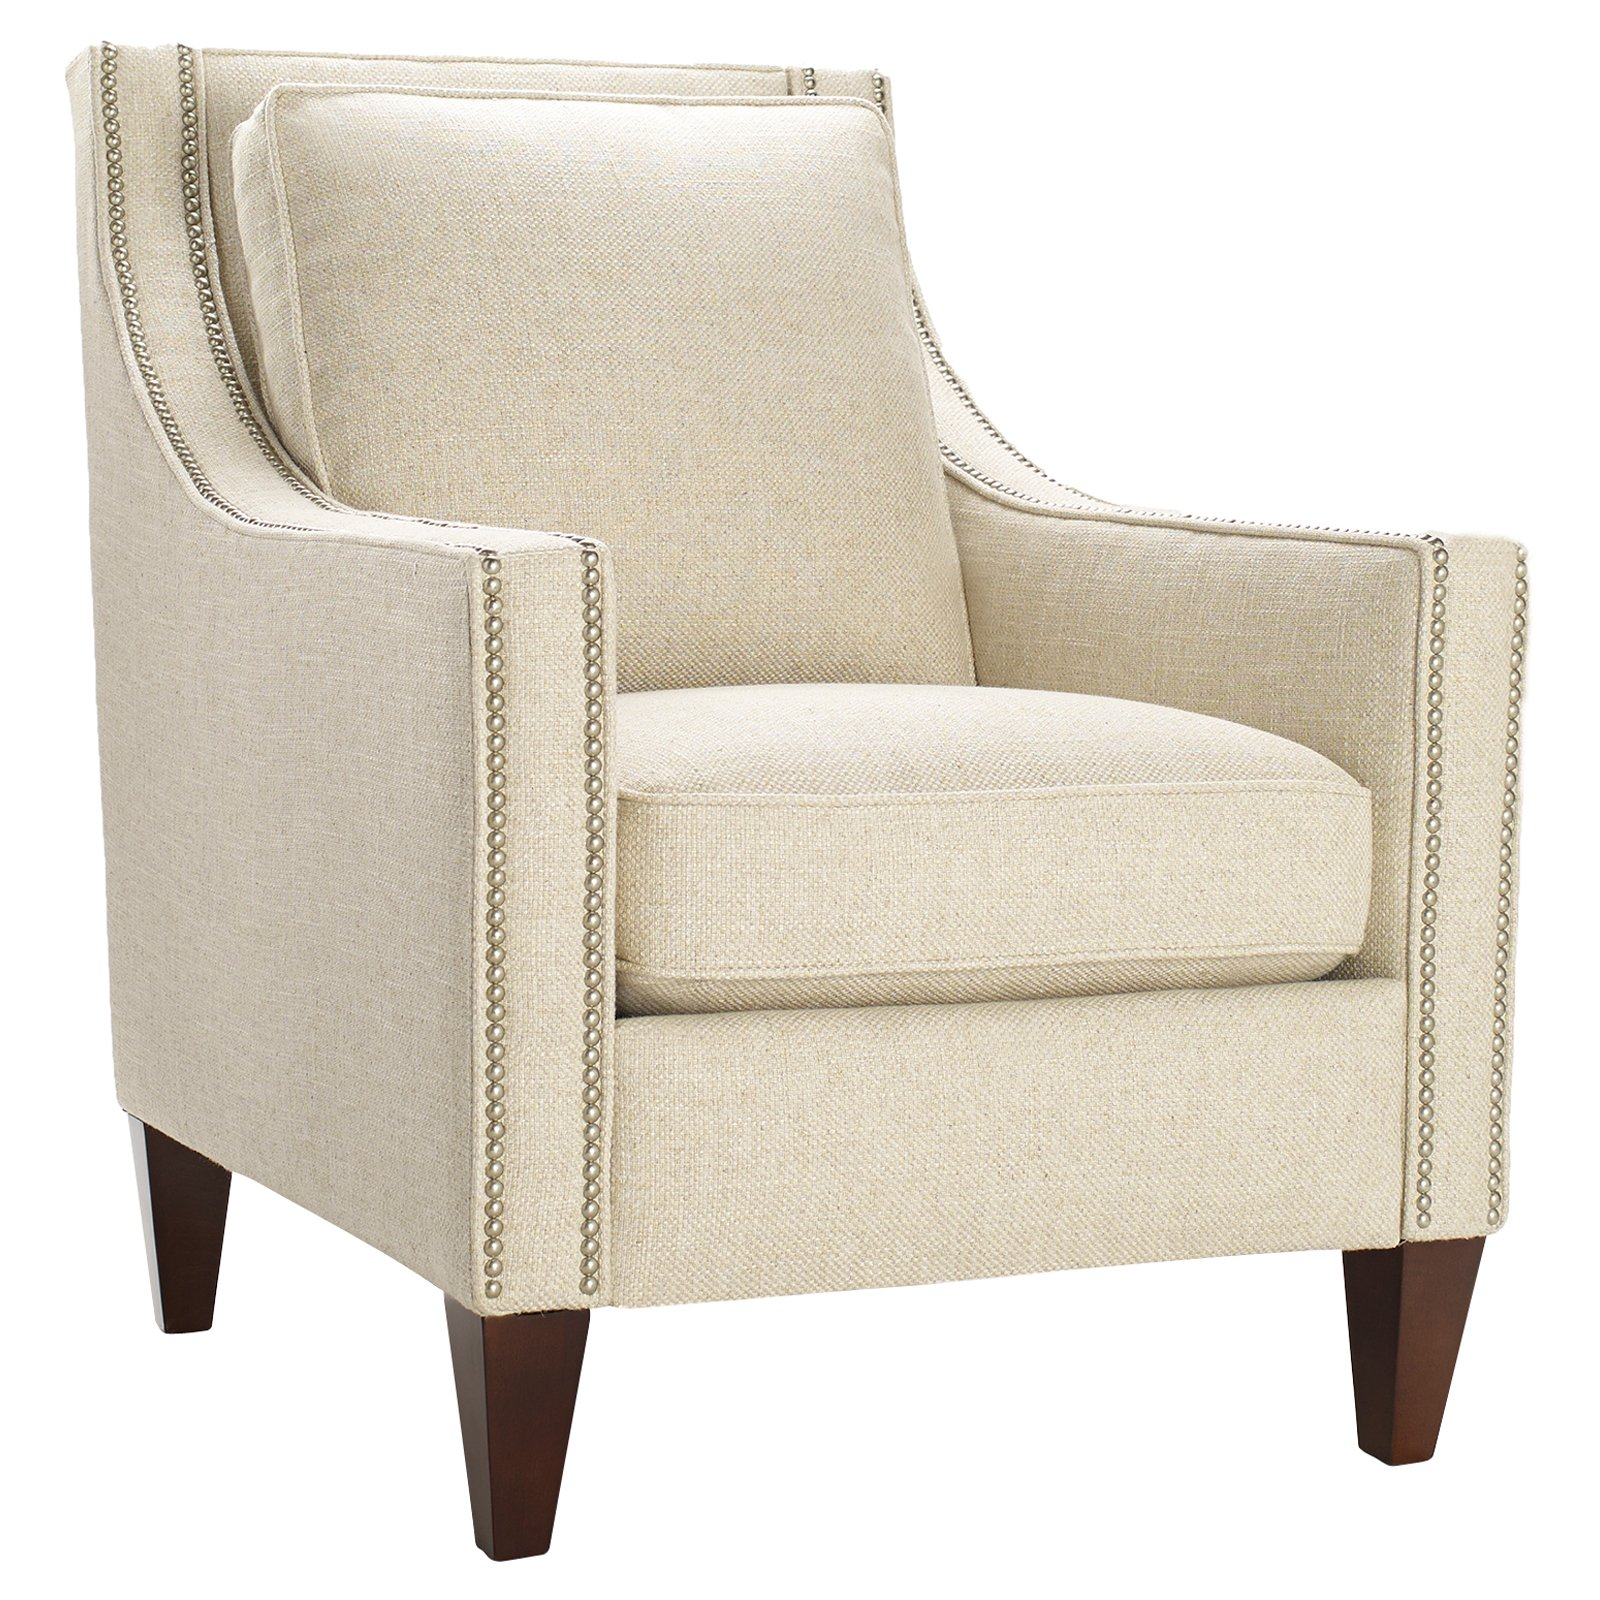 Best accent chair homesfeed for Occasional chairs for living room